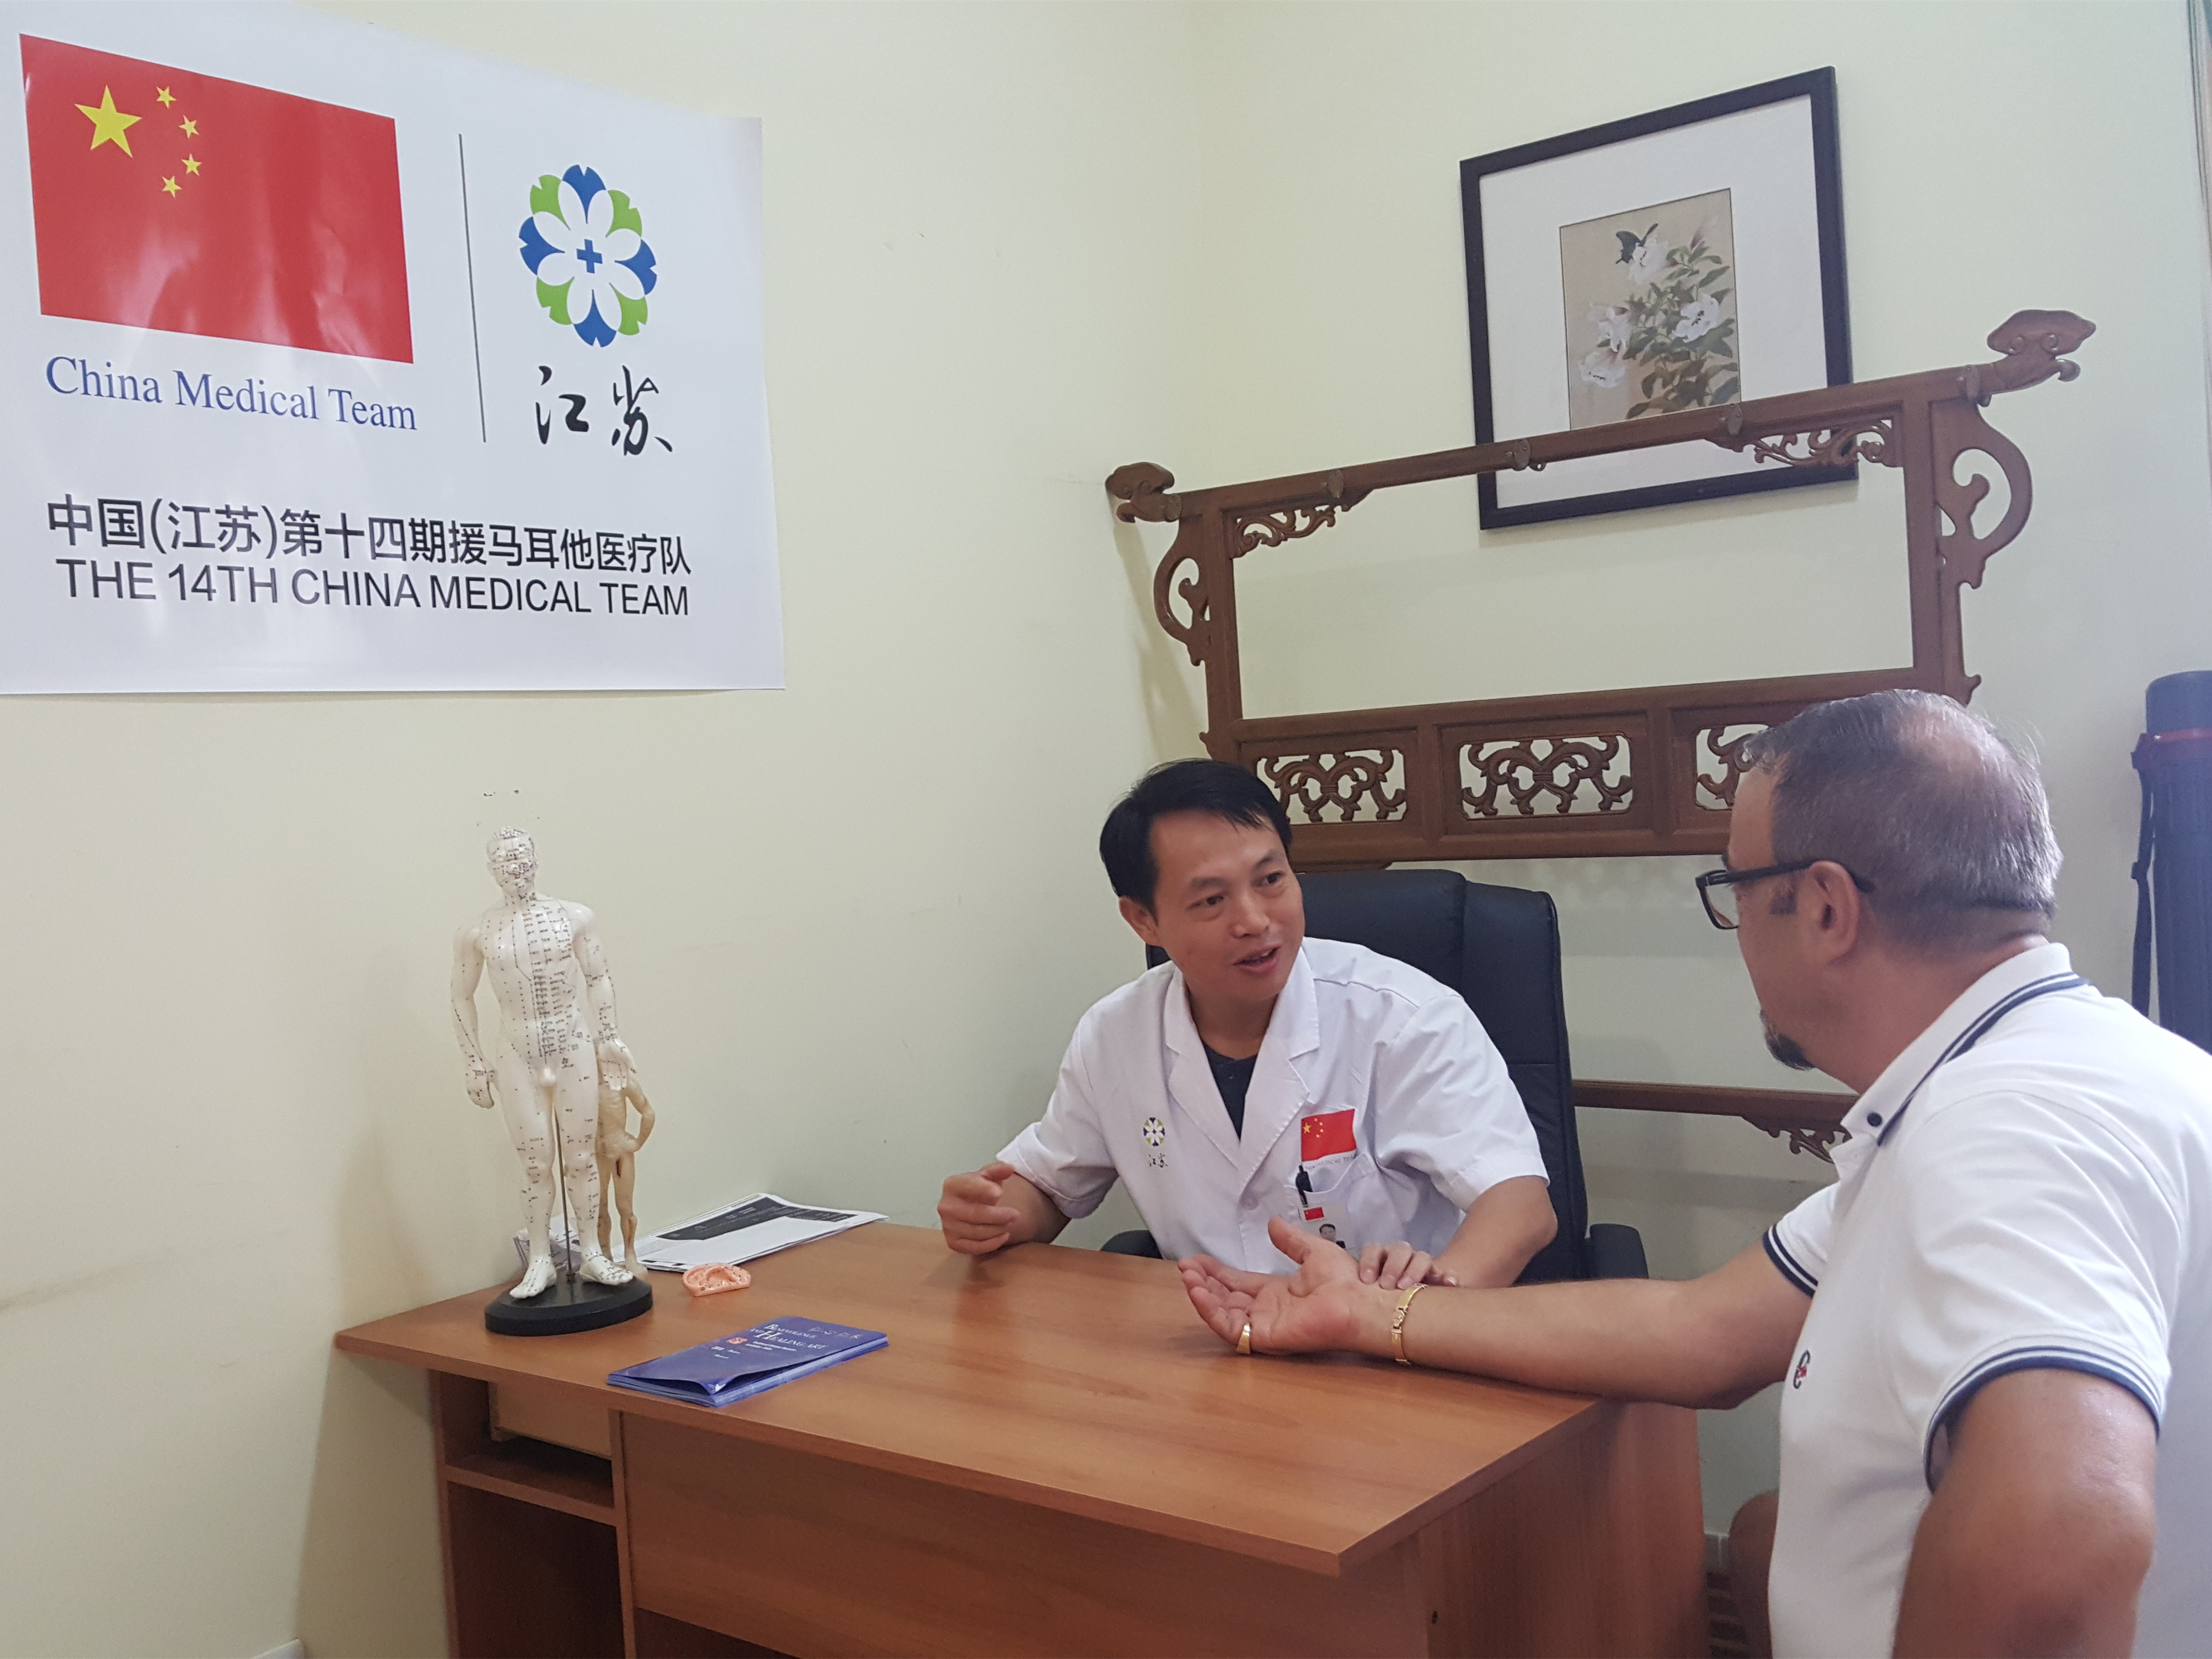 Maltese intrigued by Chinese medicine exhibition